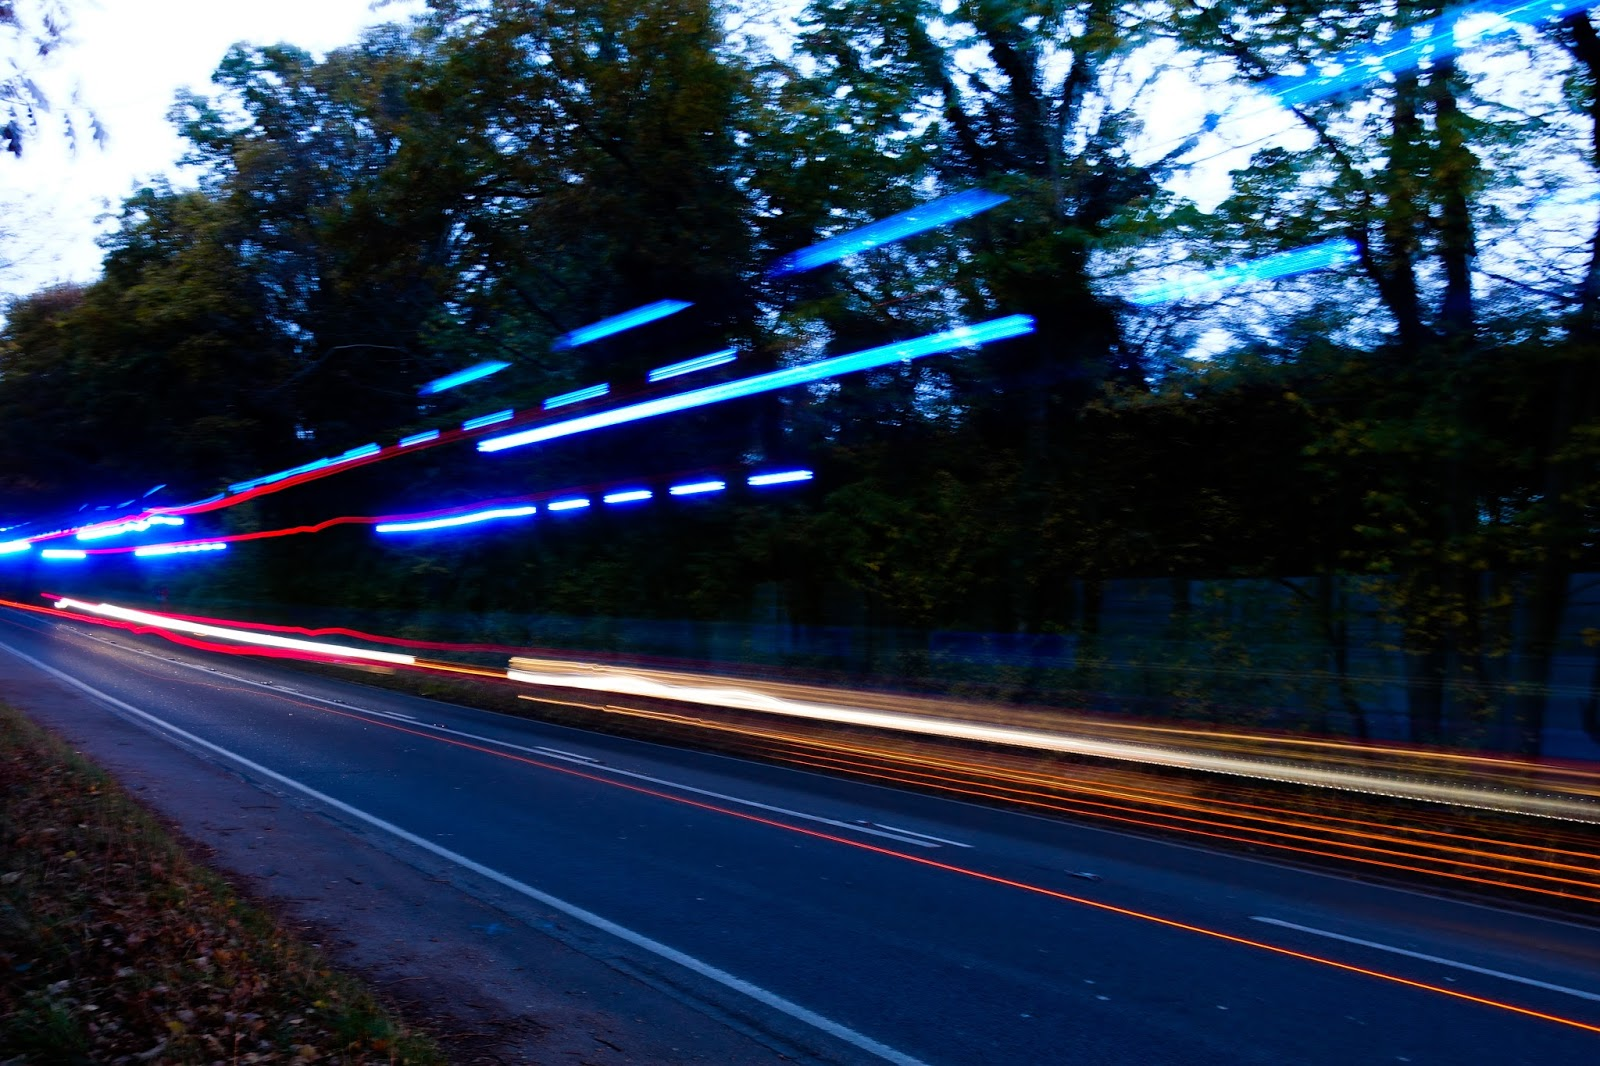 A road at dusk with lines across the photograph caused by cars and a fire engine driving past on a slow shutter speed. The lights are orange, red and blue